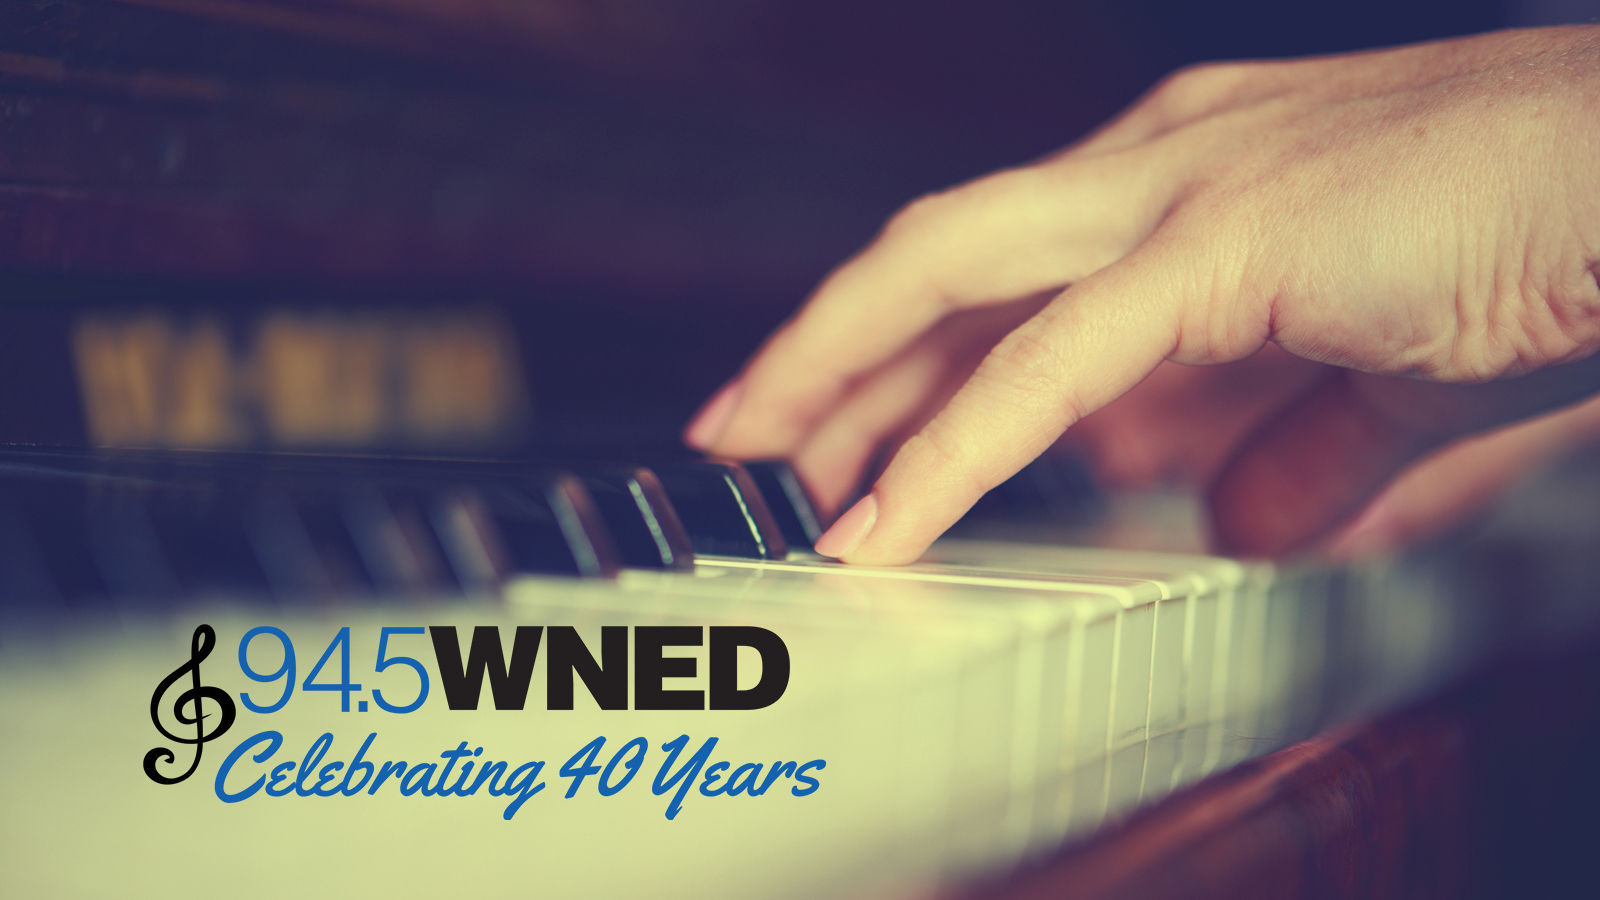 Support Classical 94.5 WNED